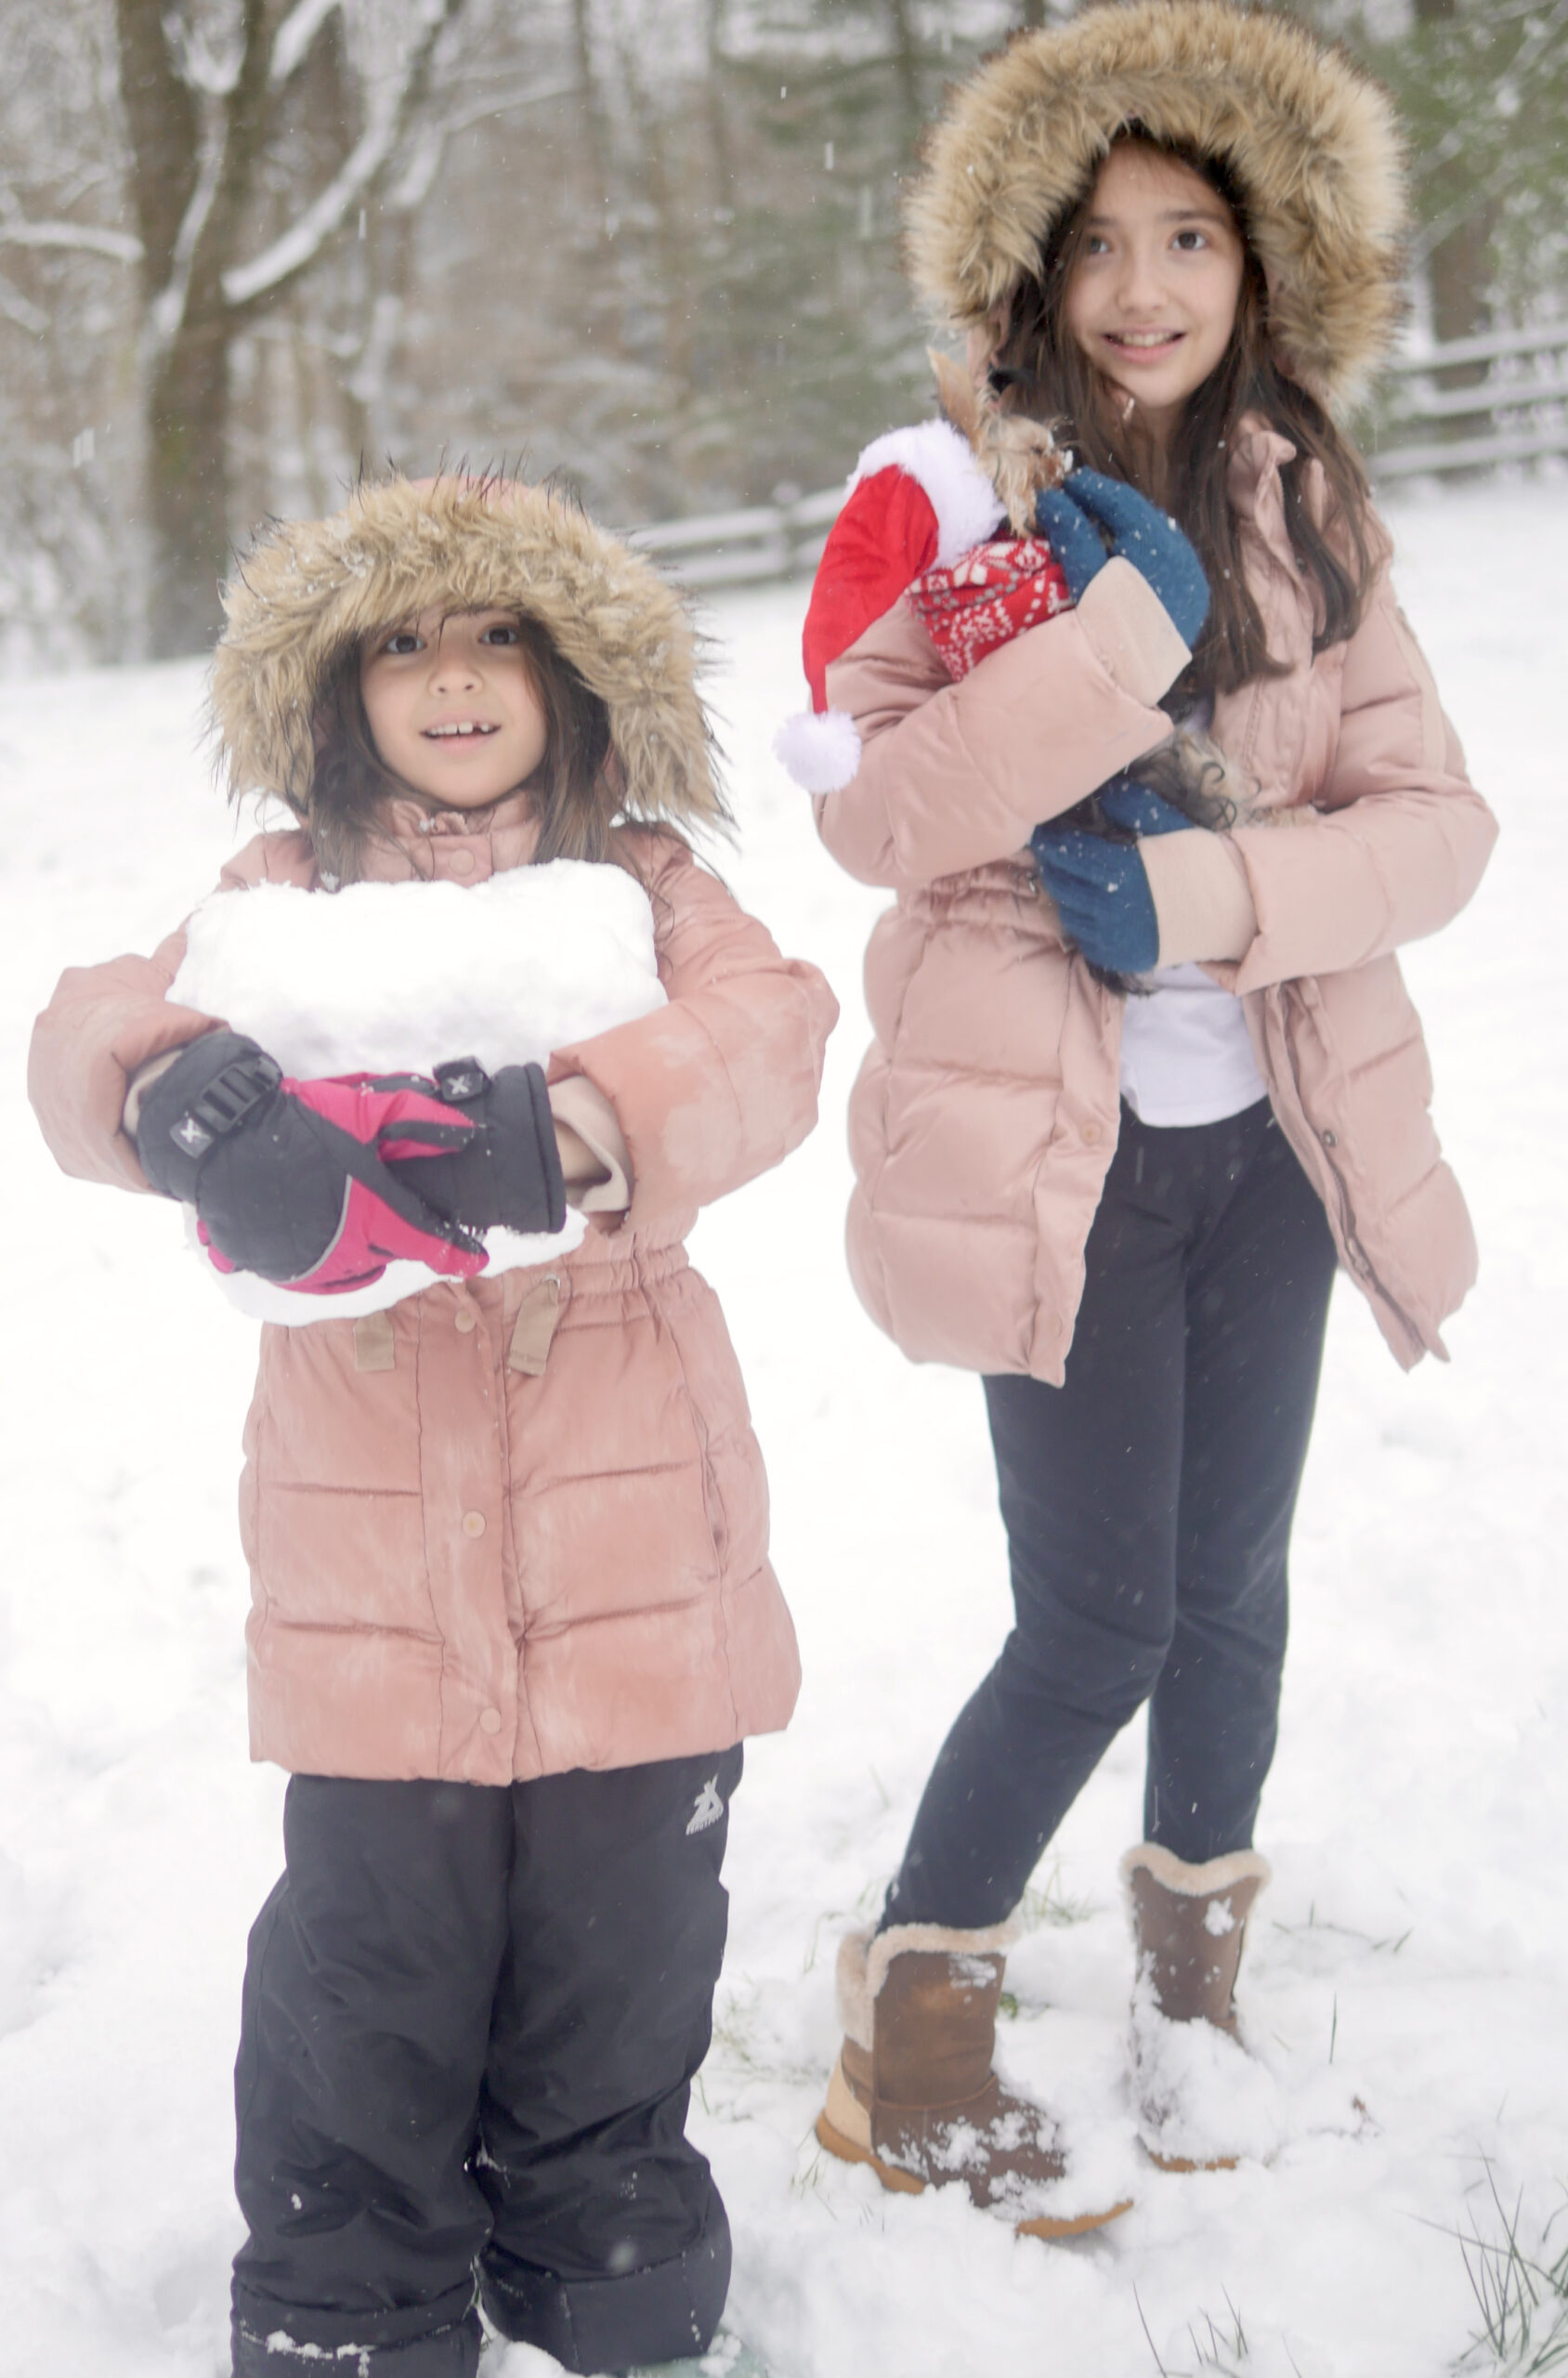 Snow Day Kid's Activities to Do at Home